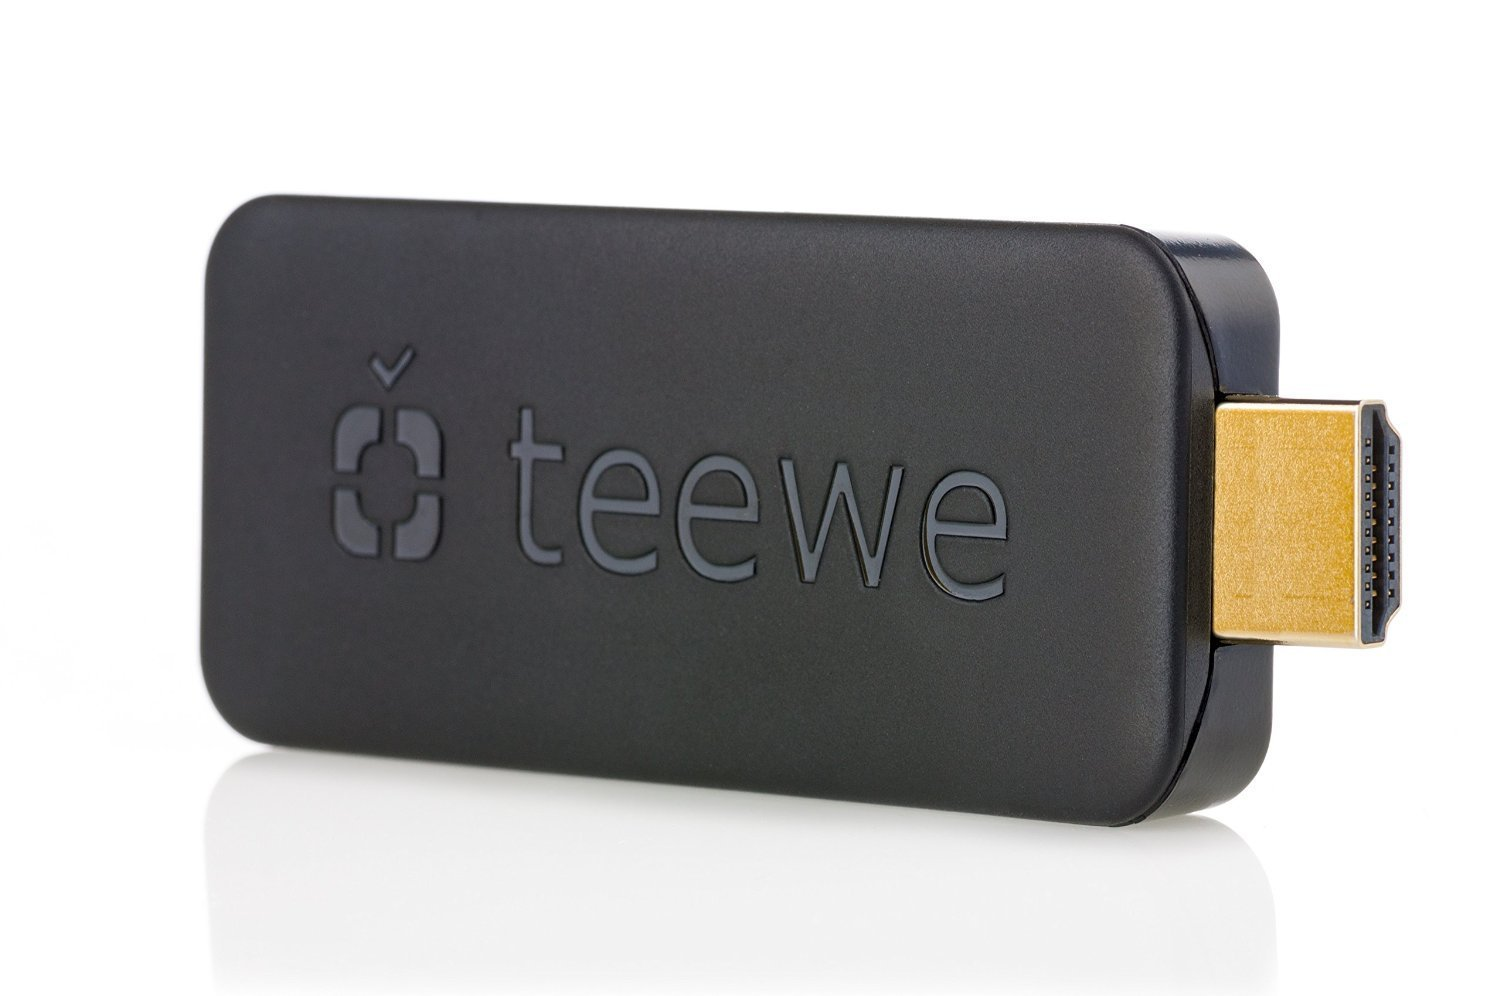 Teewe 2 Wireless HDMI Media Streaming Player: copper: Amazon.in ...